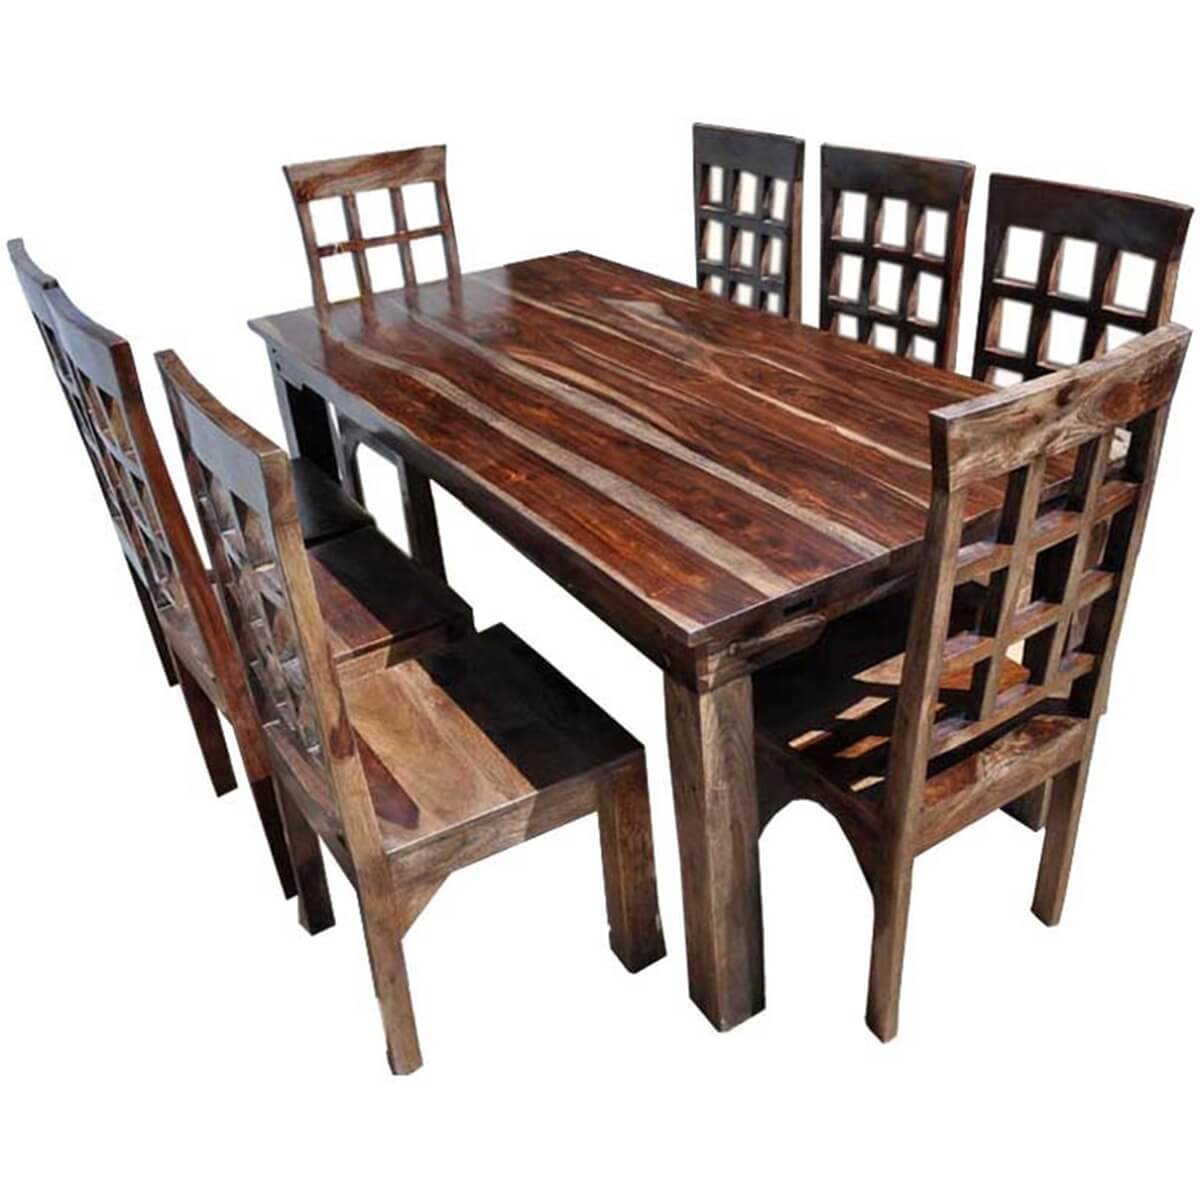 Portland rustic furniture dining room table chair set w for Rustic dining room table